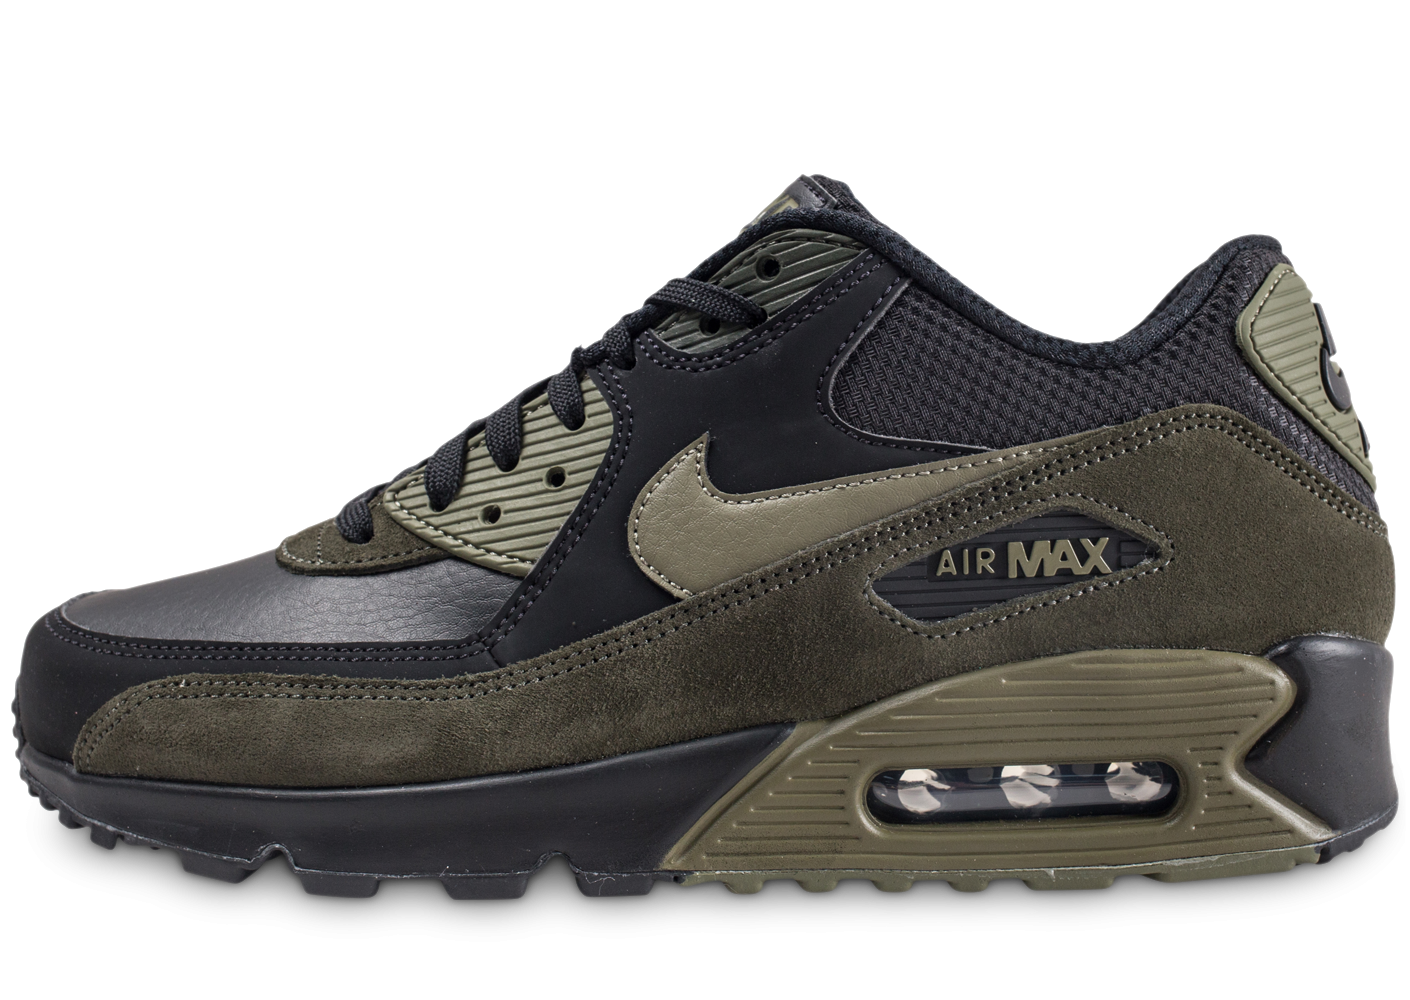 new product ee3e4 d49c7 ... norway nike air max 90 leather noire et kaki chaussures baskets homme  chausport 19ceb 34c3e